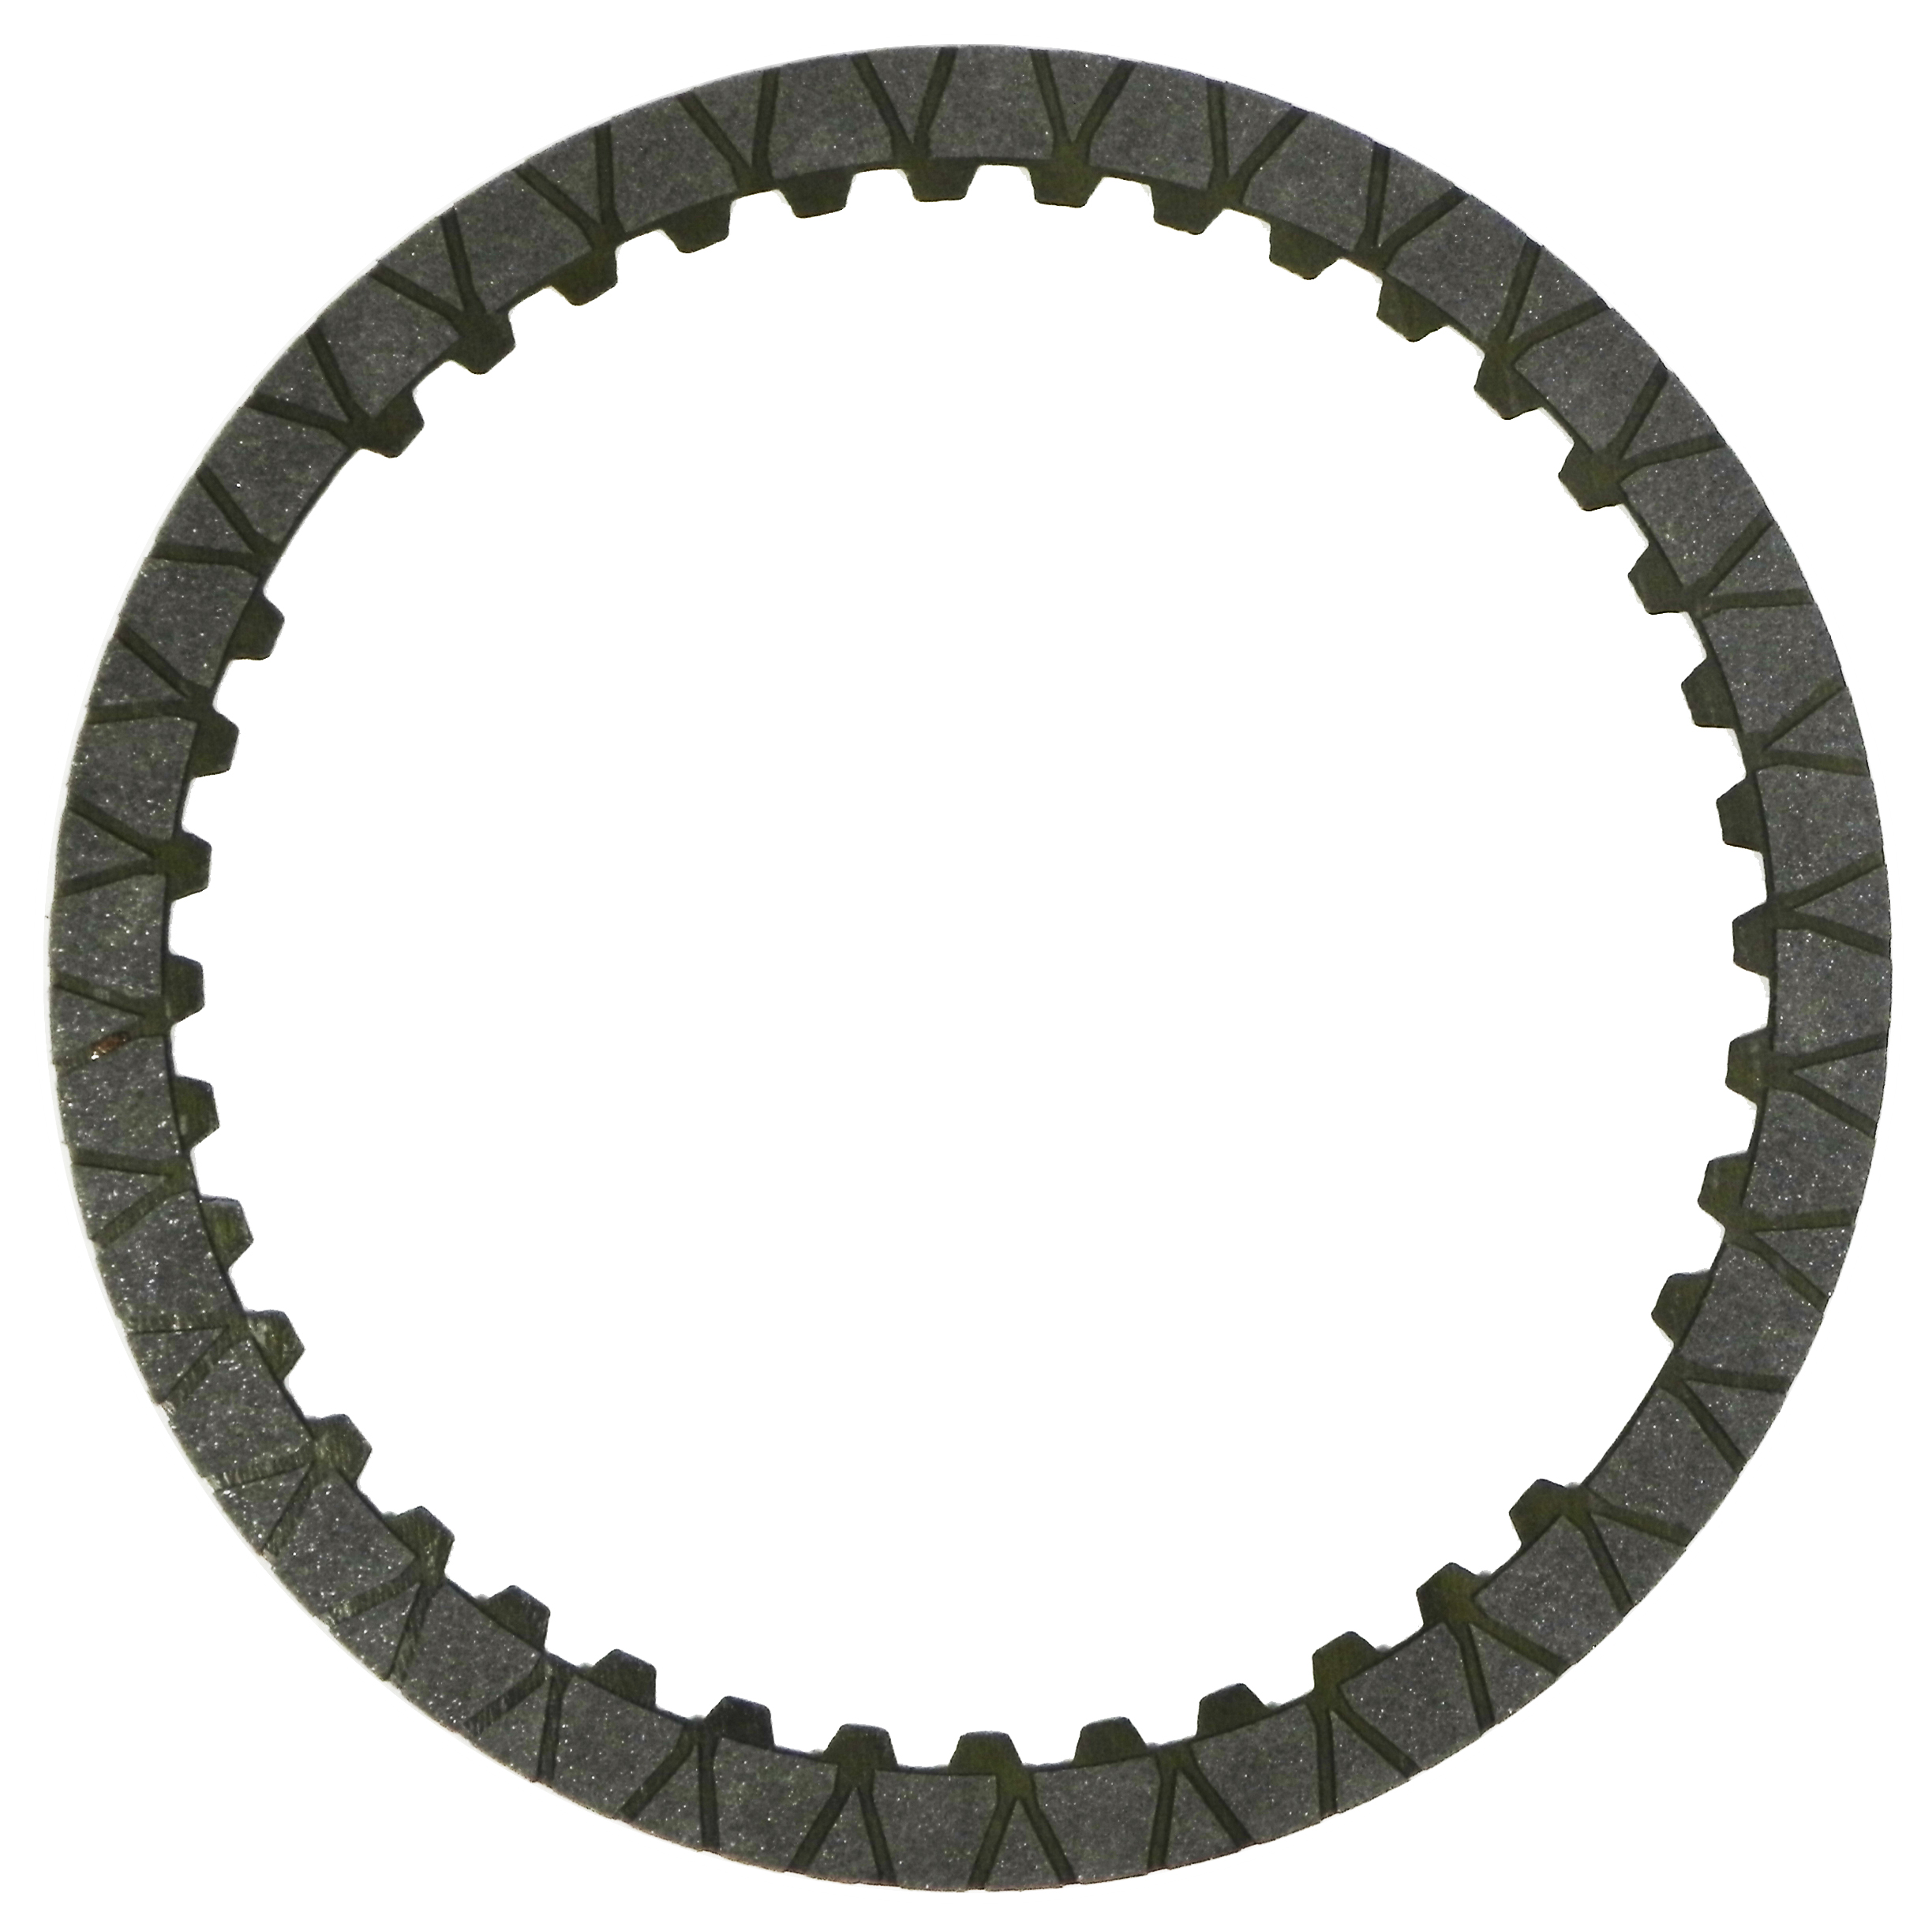 R560290 | 2011-ON Friction Clutch Plate OE Replacement B Clutch